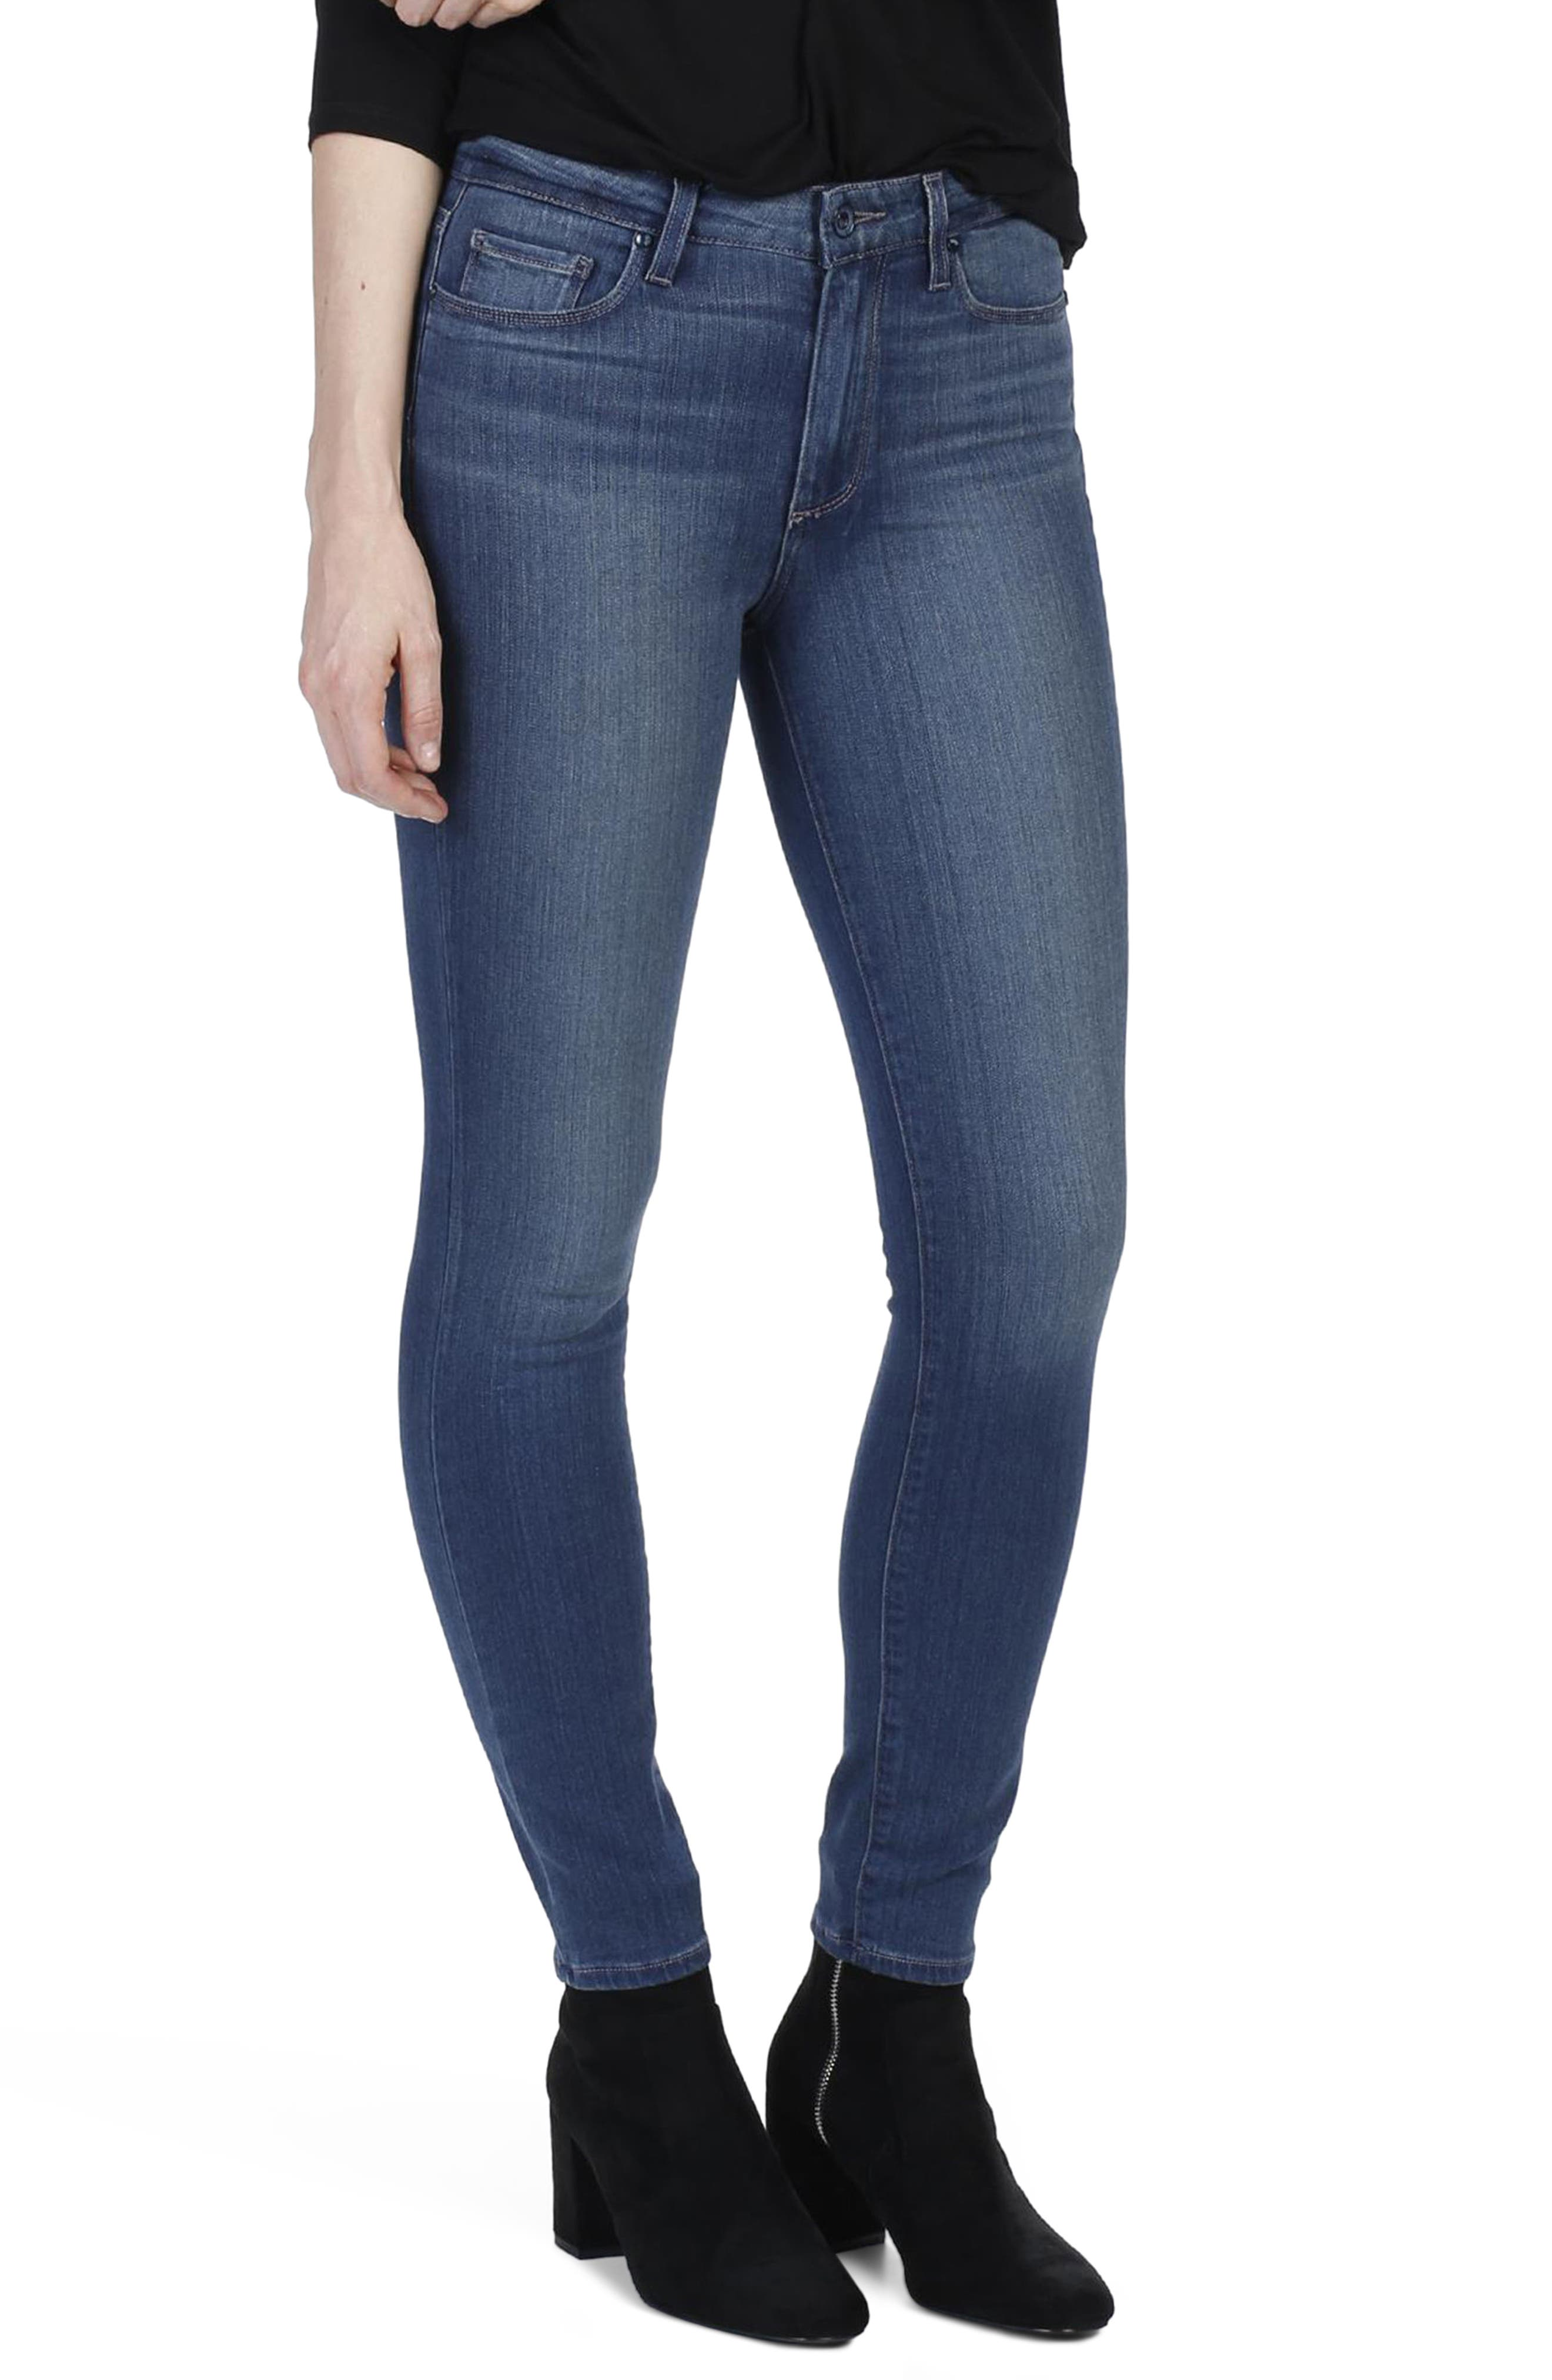 Transcend - Hoxton High Waist Ankle Skinny Jeans,                             Main thumbnail 2, color,